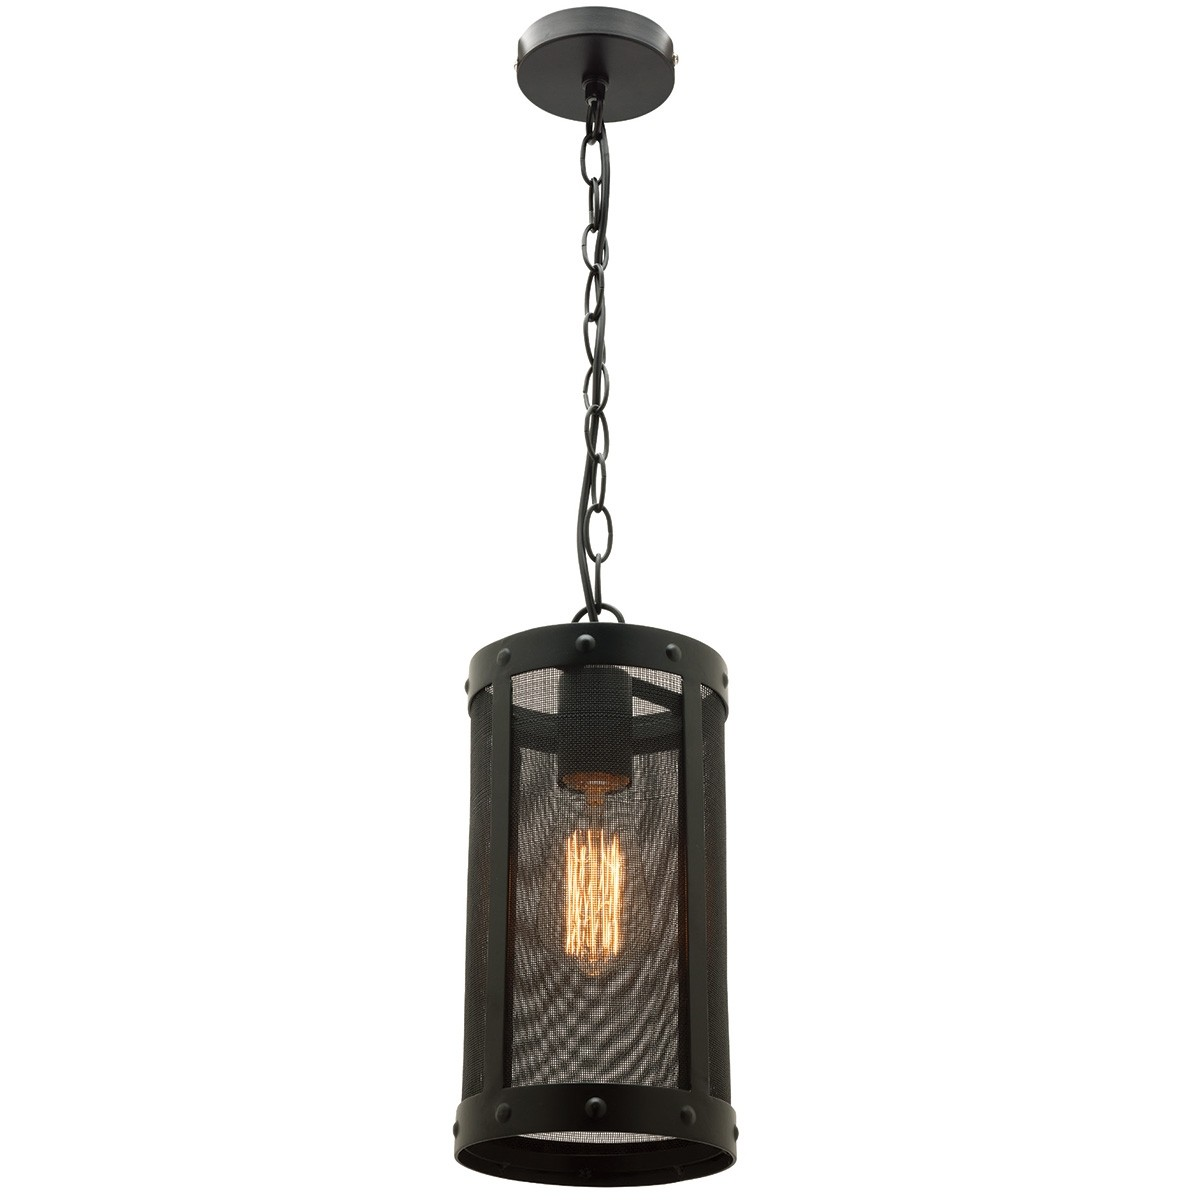 Ulric 1 Light Metal Pendant Light